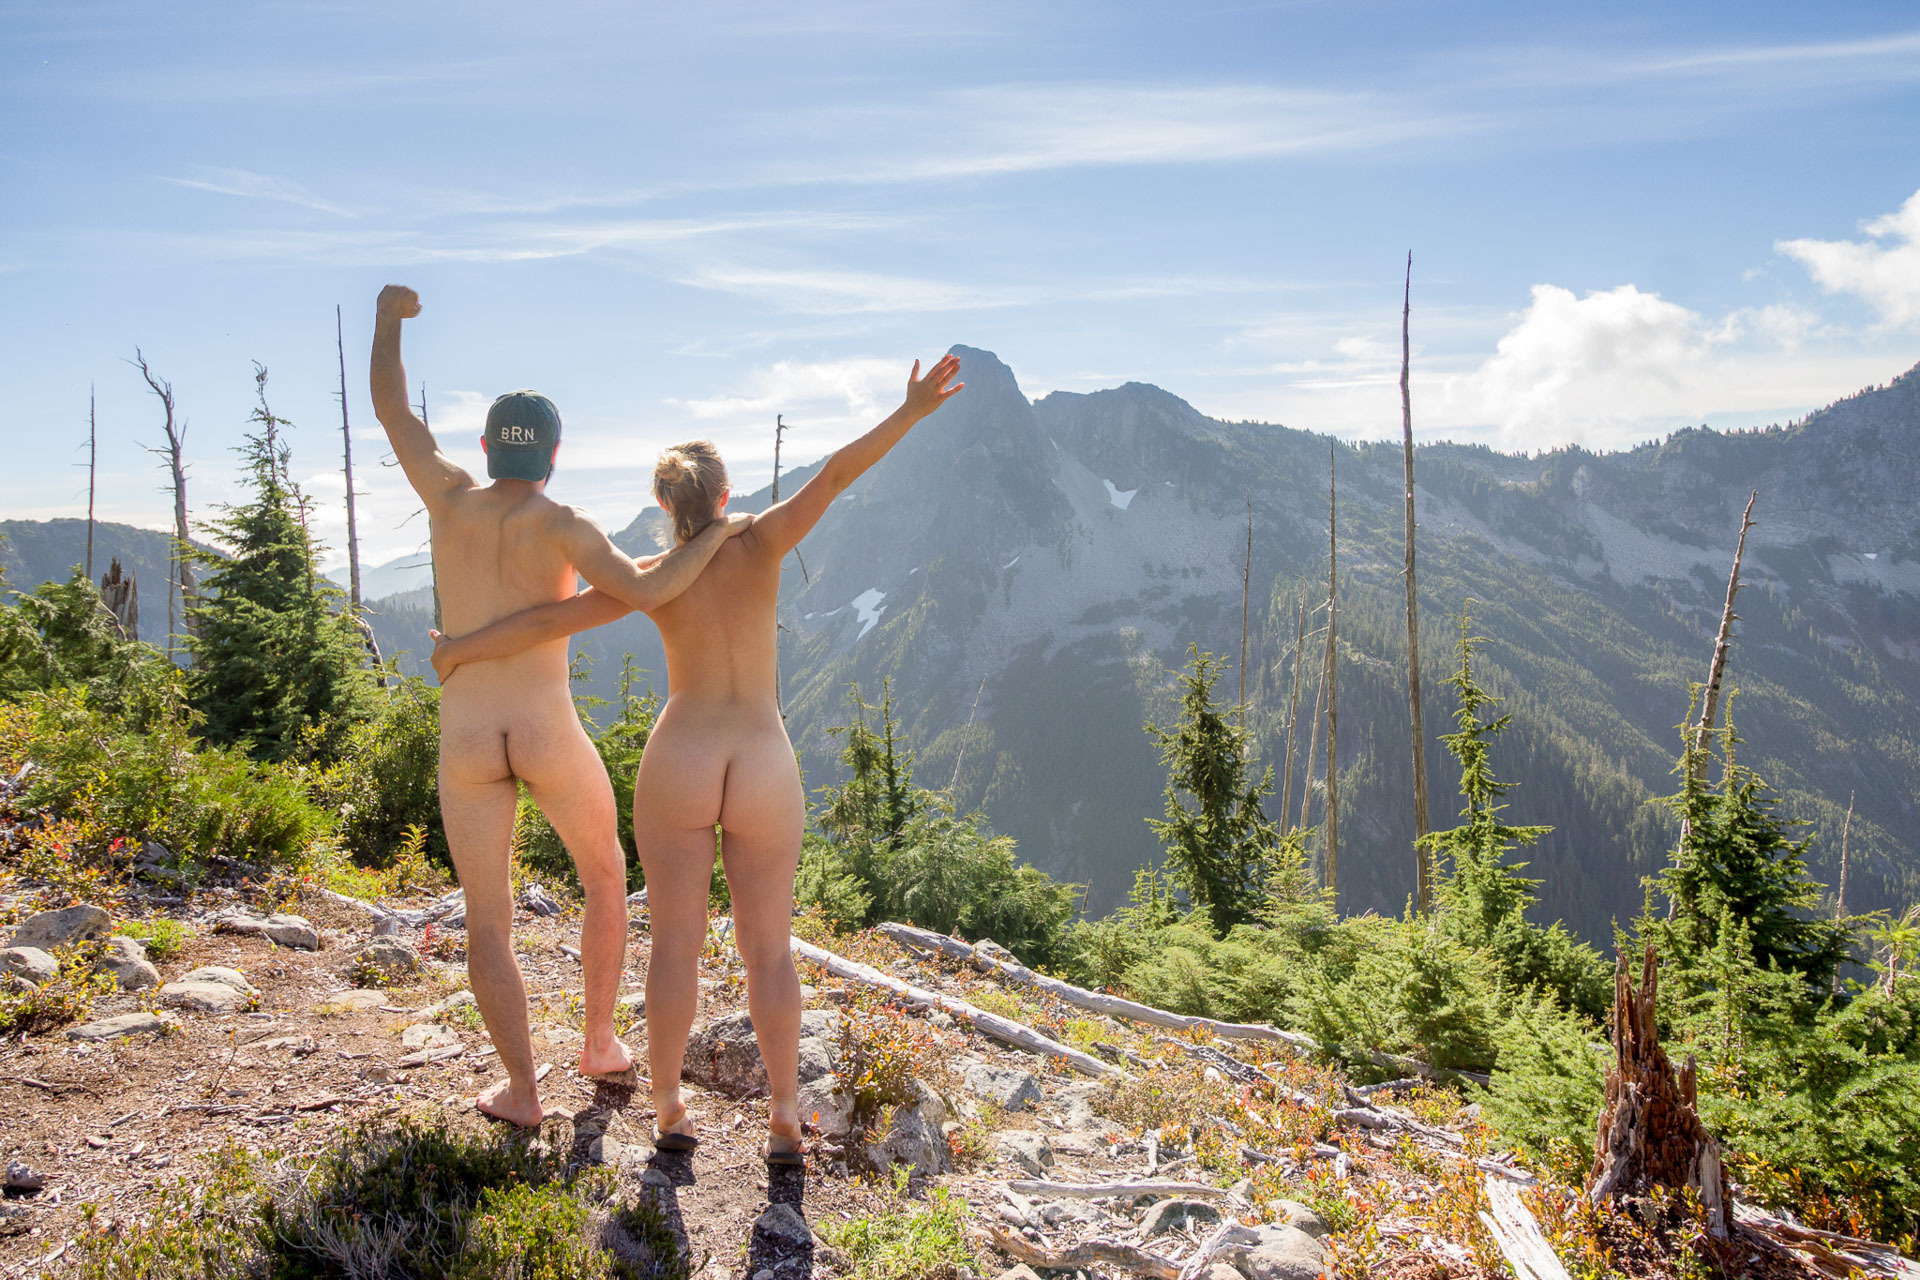 This was the first time we ever got nude in nature, How To Get Nude for Mother Nature (Hint: She's Seen It Before), joe brn Cuzzocrea, nude,